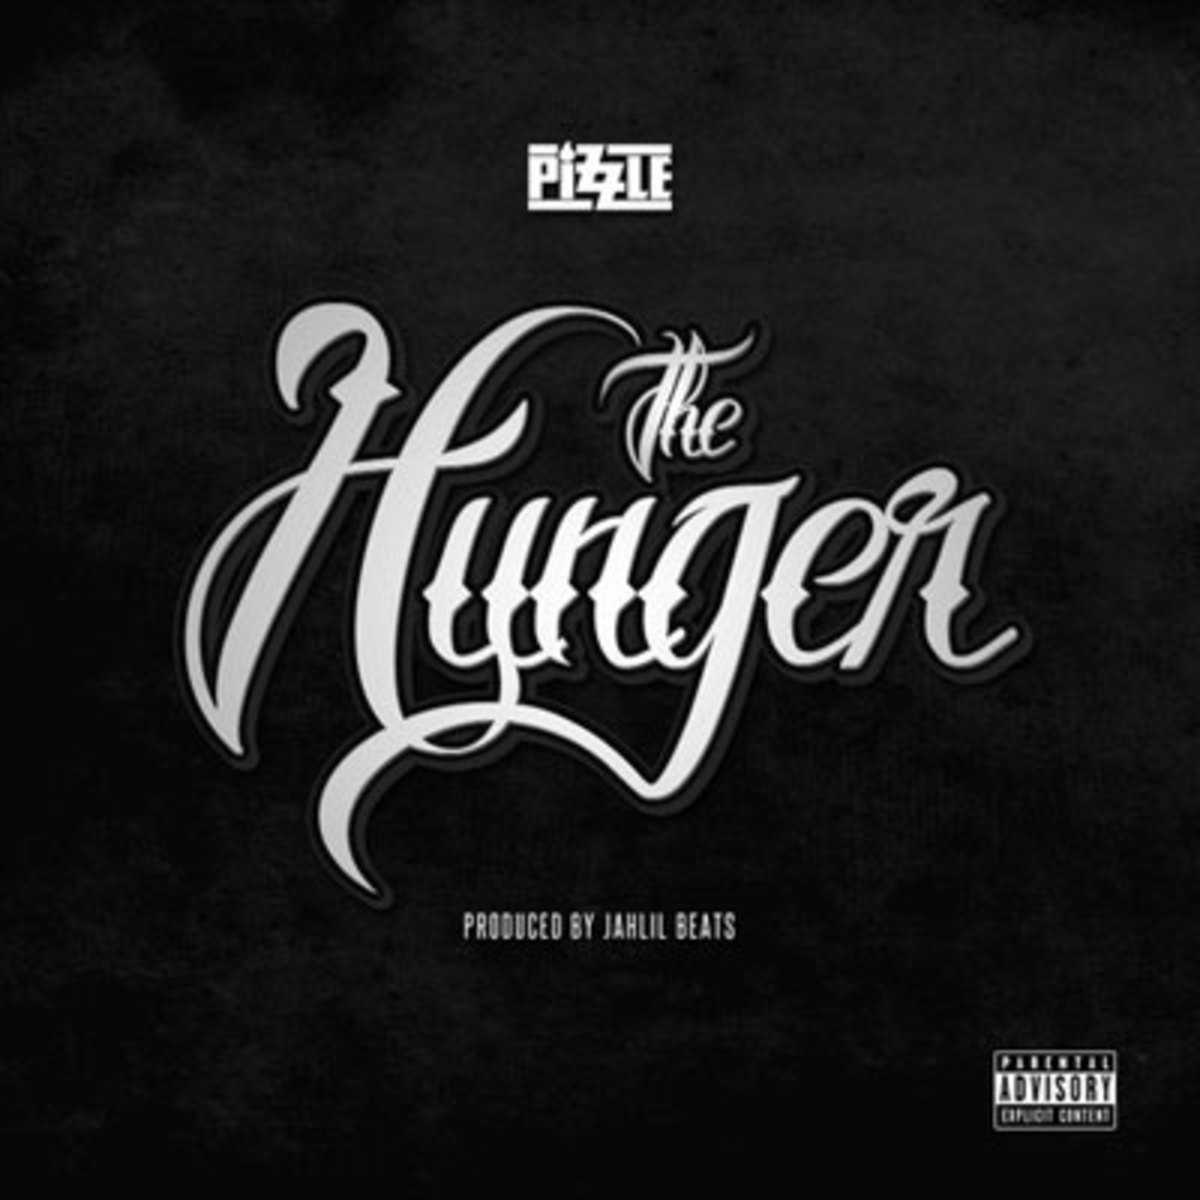 pizzle-thehunger.jpg